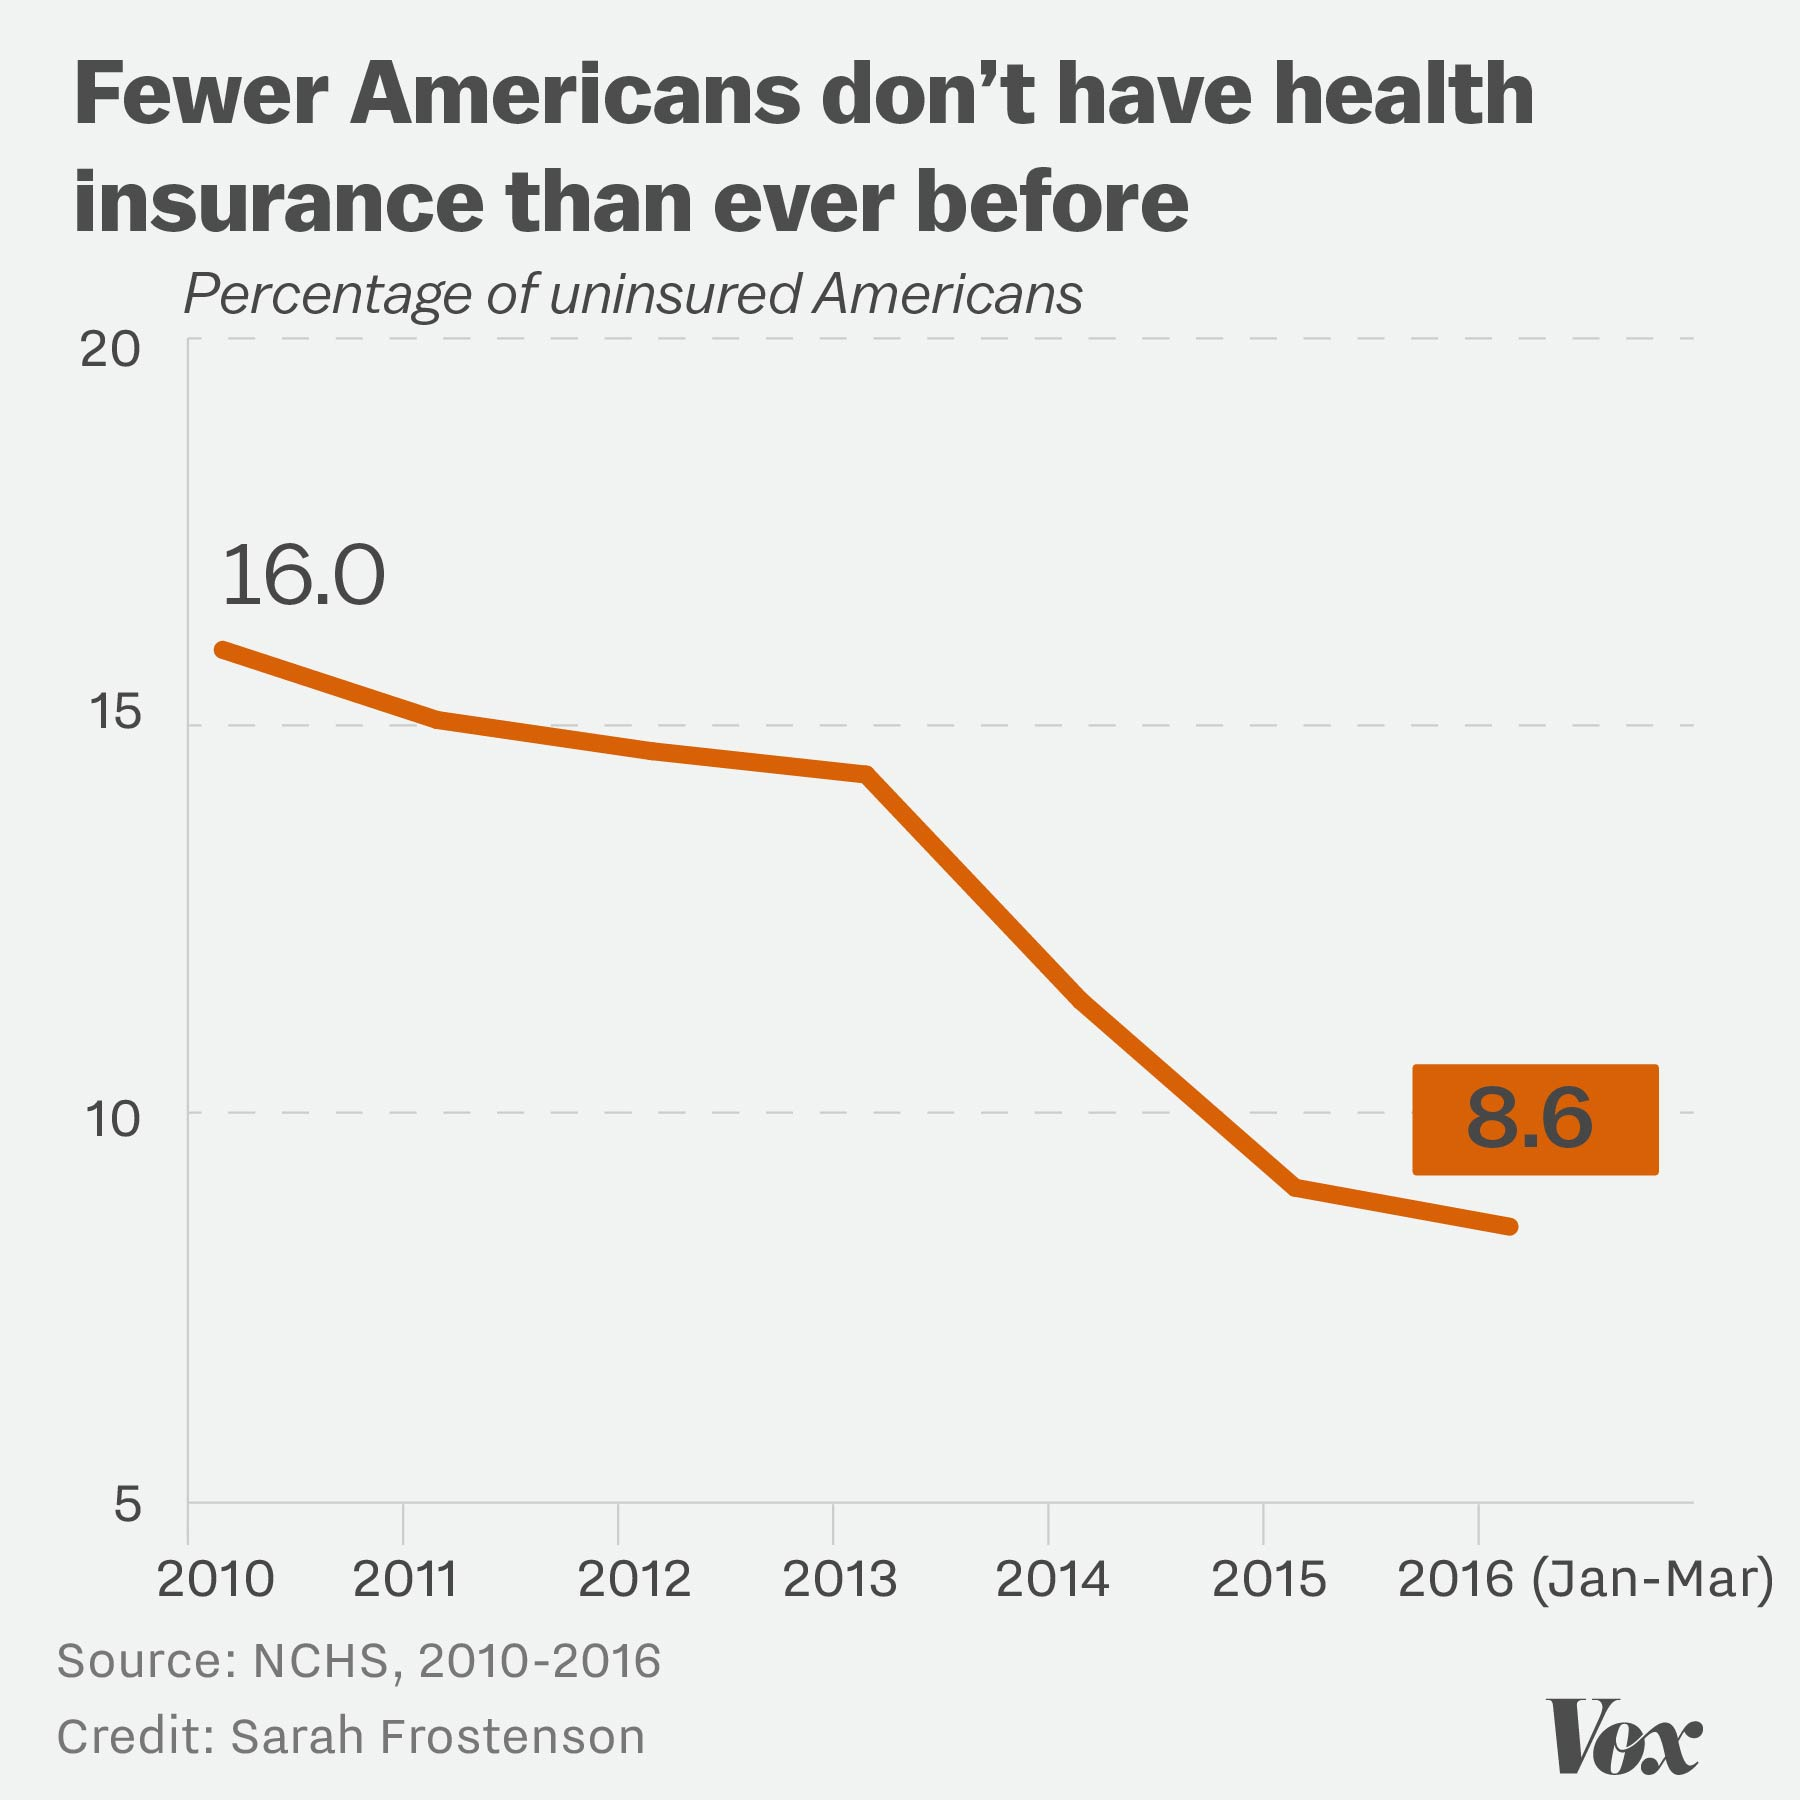 Chart showing the continued decline of the uninsured rate for early 2016